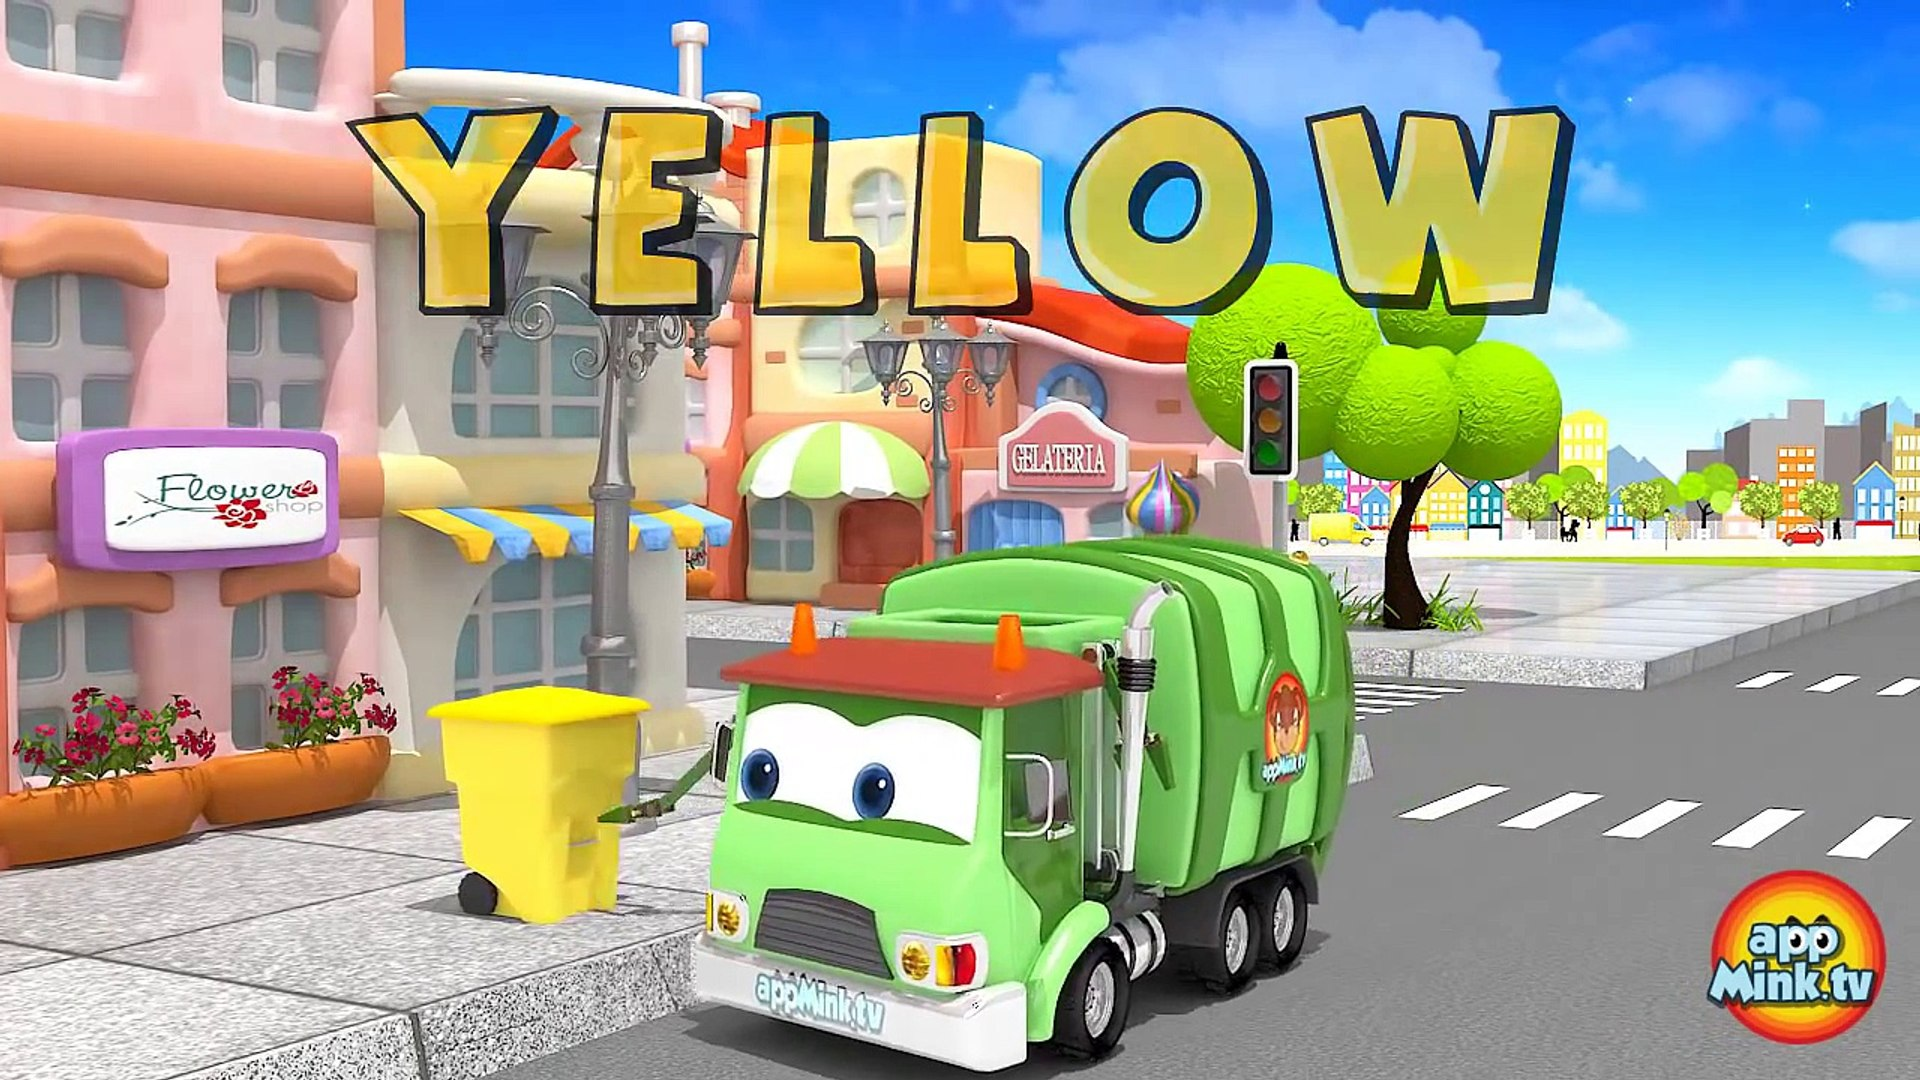 Toy Garbage Truck Toy Kids Learn Colors & Shapes Disney Cars Toy Story toys inspired Kids Cartoo